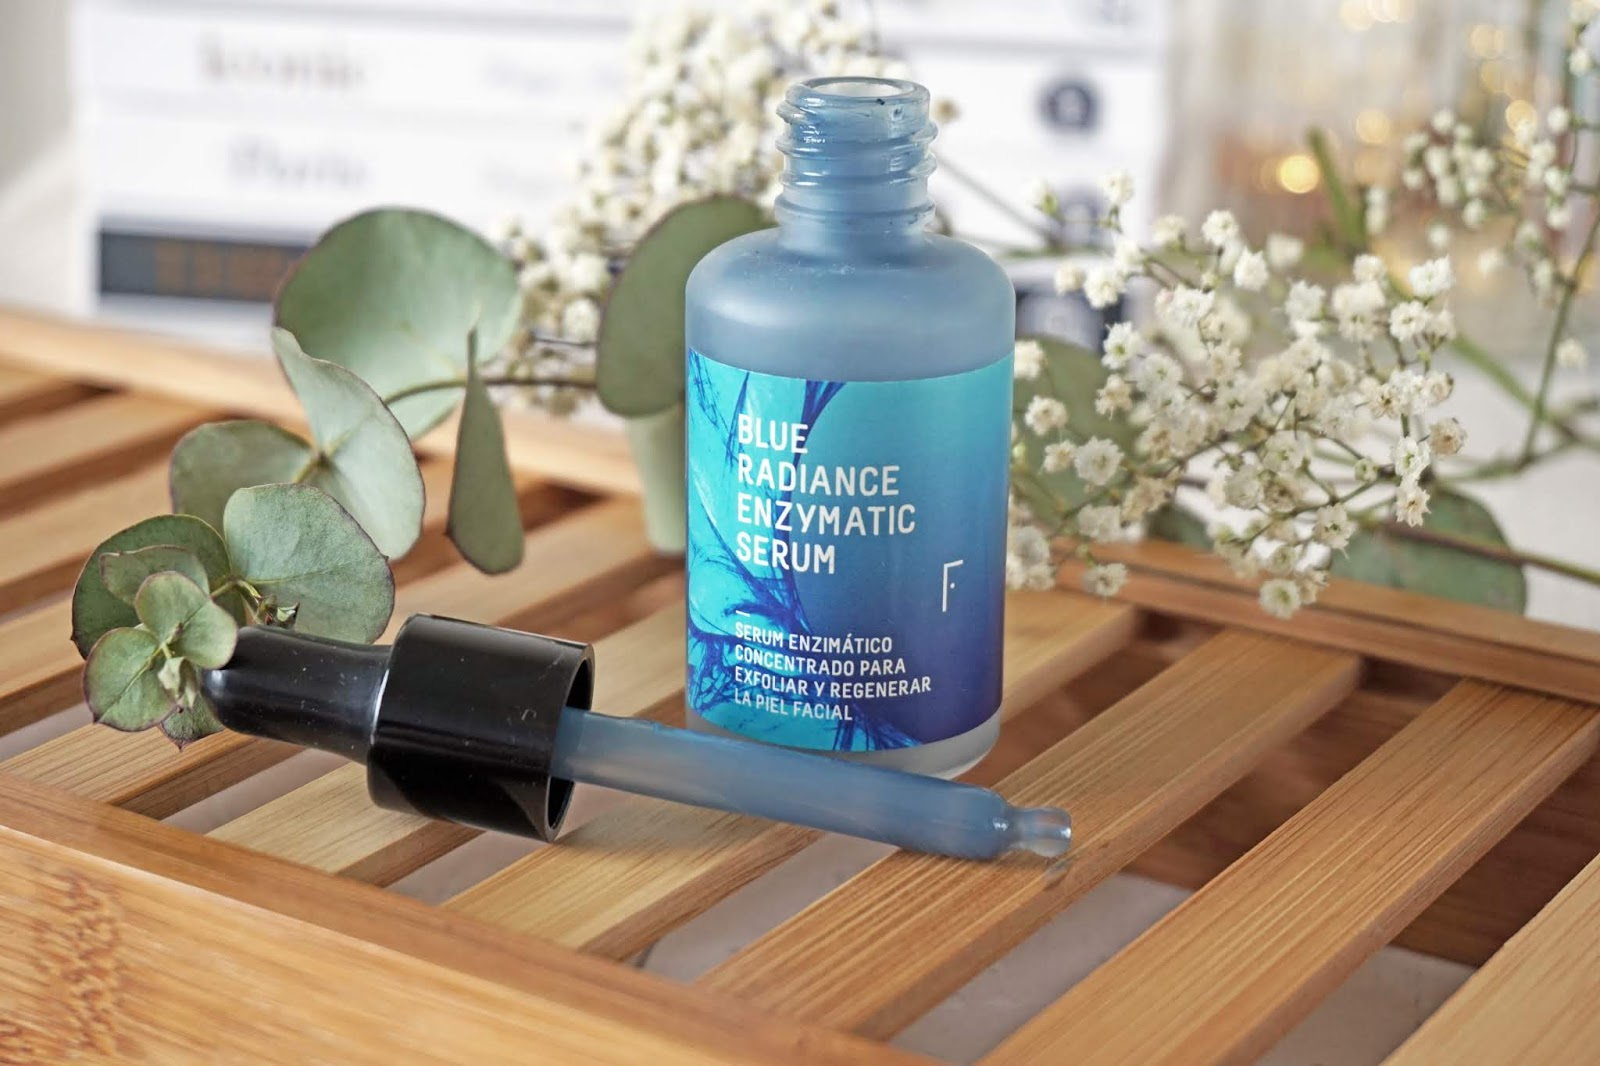 Freshly Cosmetics Blue Radiance Enzymatic Serum